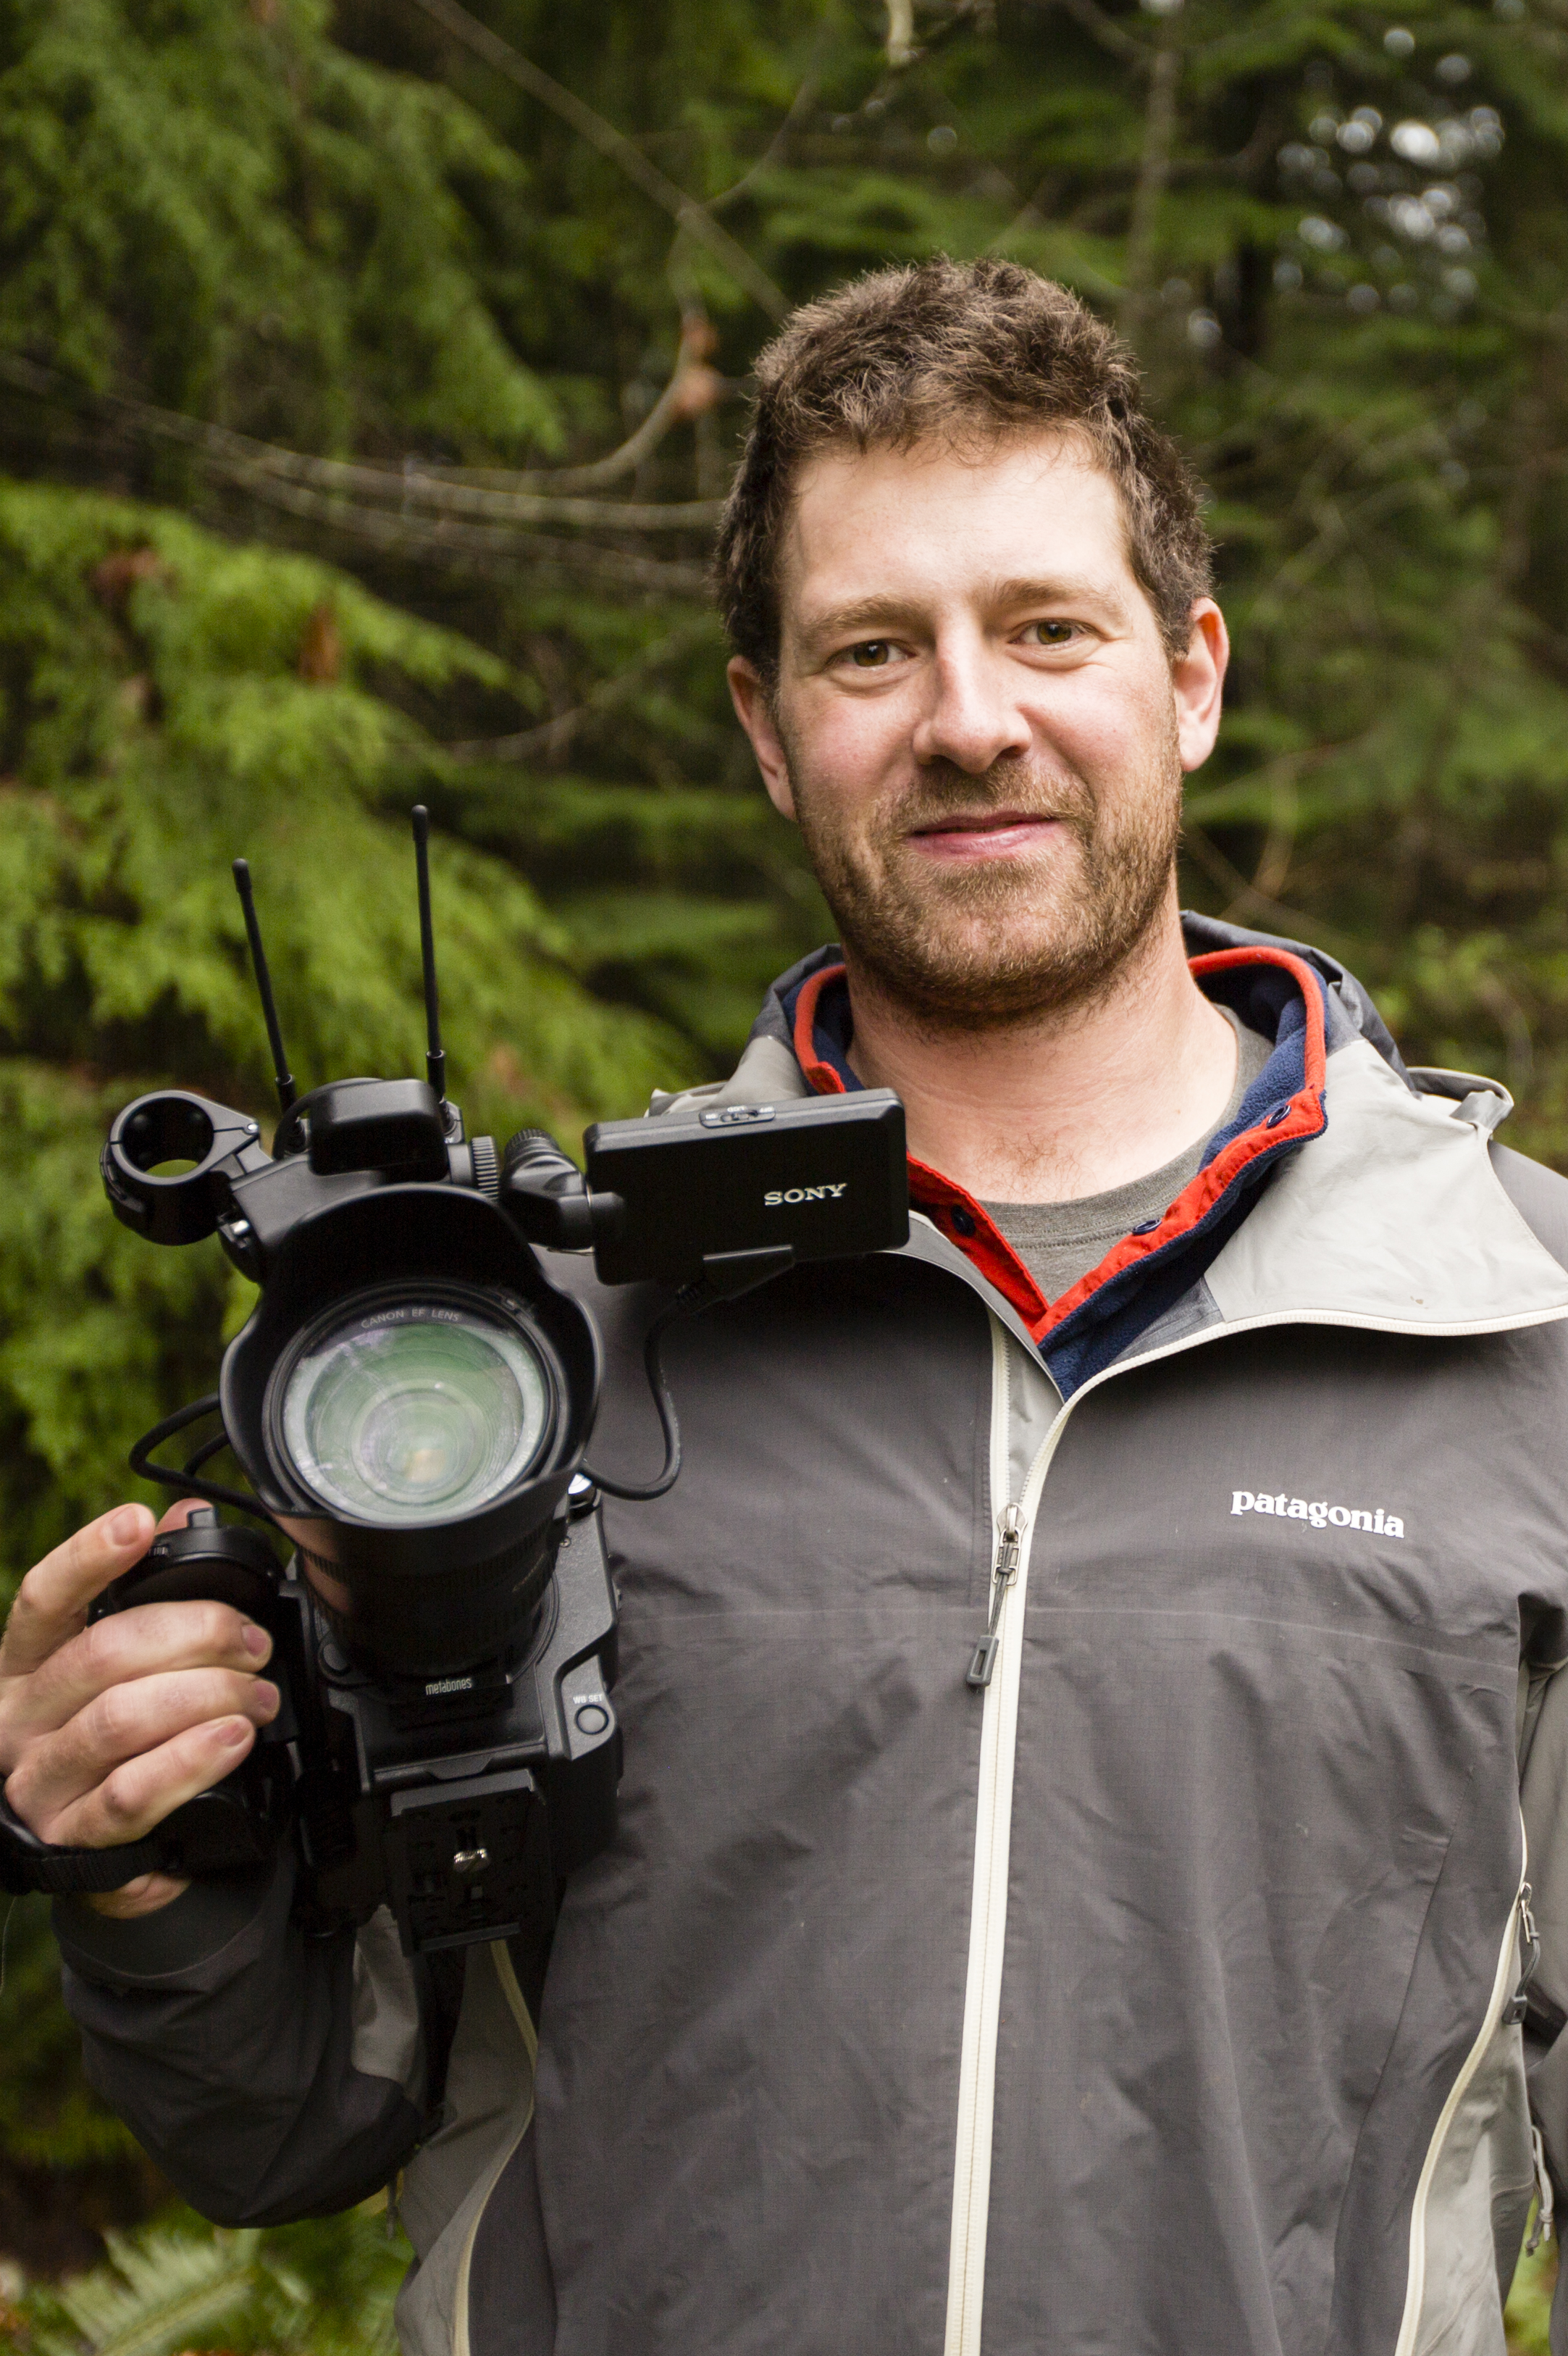 Colin Arisman - An environmental and adventure filmmaker and the co-founder of Wild Confluence Films. His work has been shown at the Wild and Scenic Film Festival, and has won numerous awards. Colin graduated from the Wilderness Awareness School and the University of Vermont, where he earned a Summa Cum Laude degree in Natural Resource Planning. Learn more at wildconfluence.com